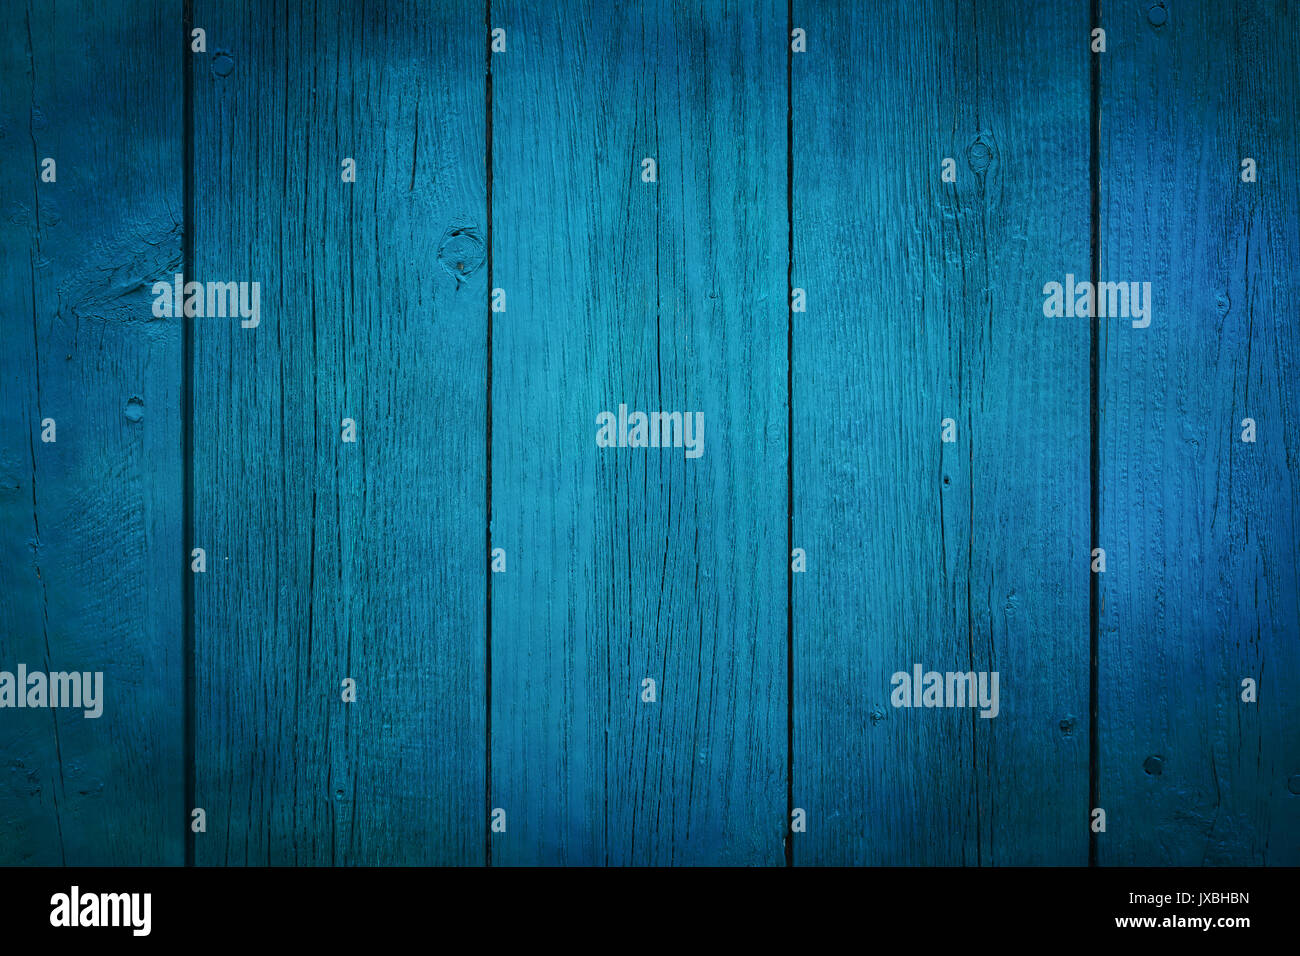 Bright blue painted board background. - Stock Image